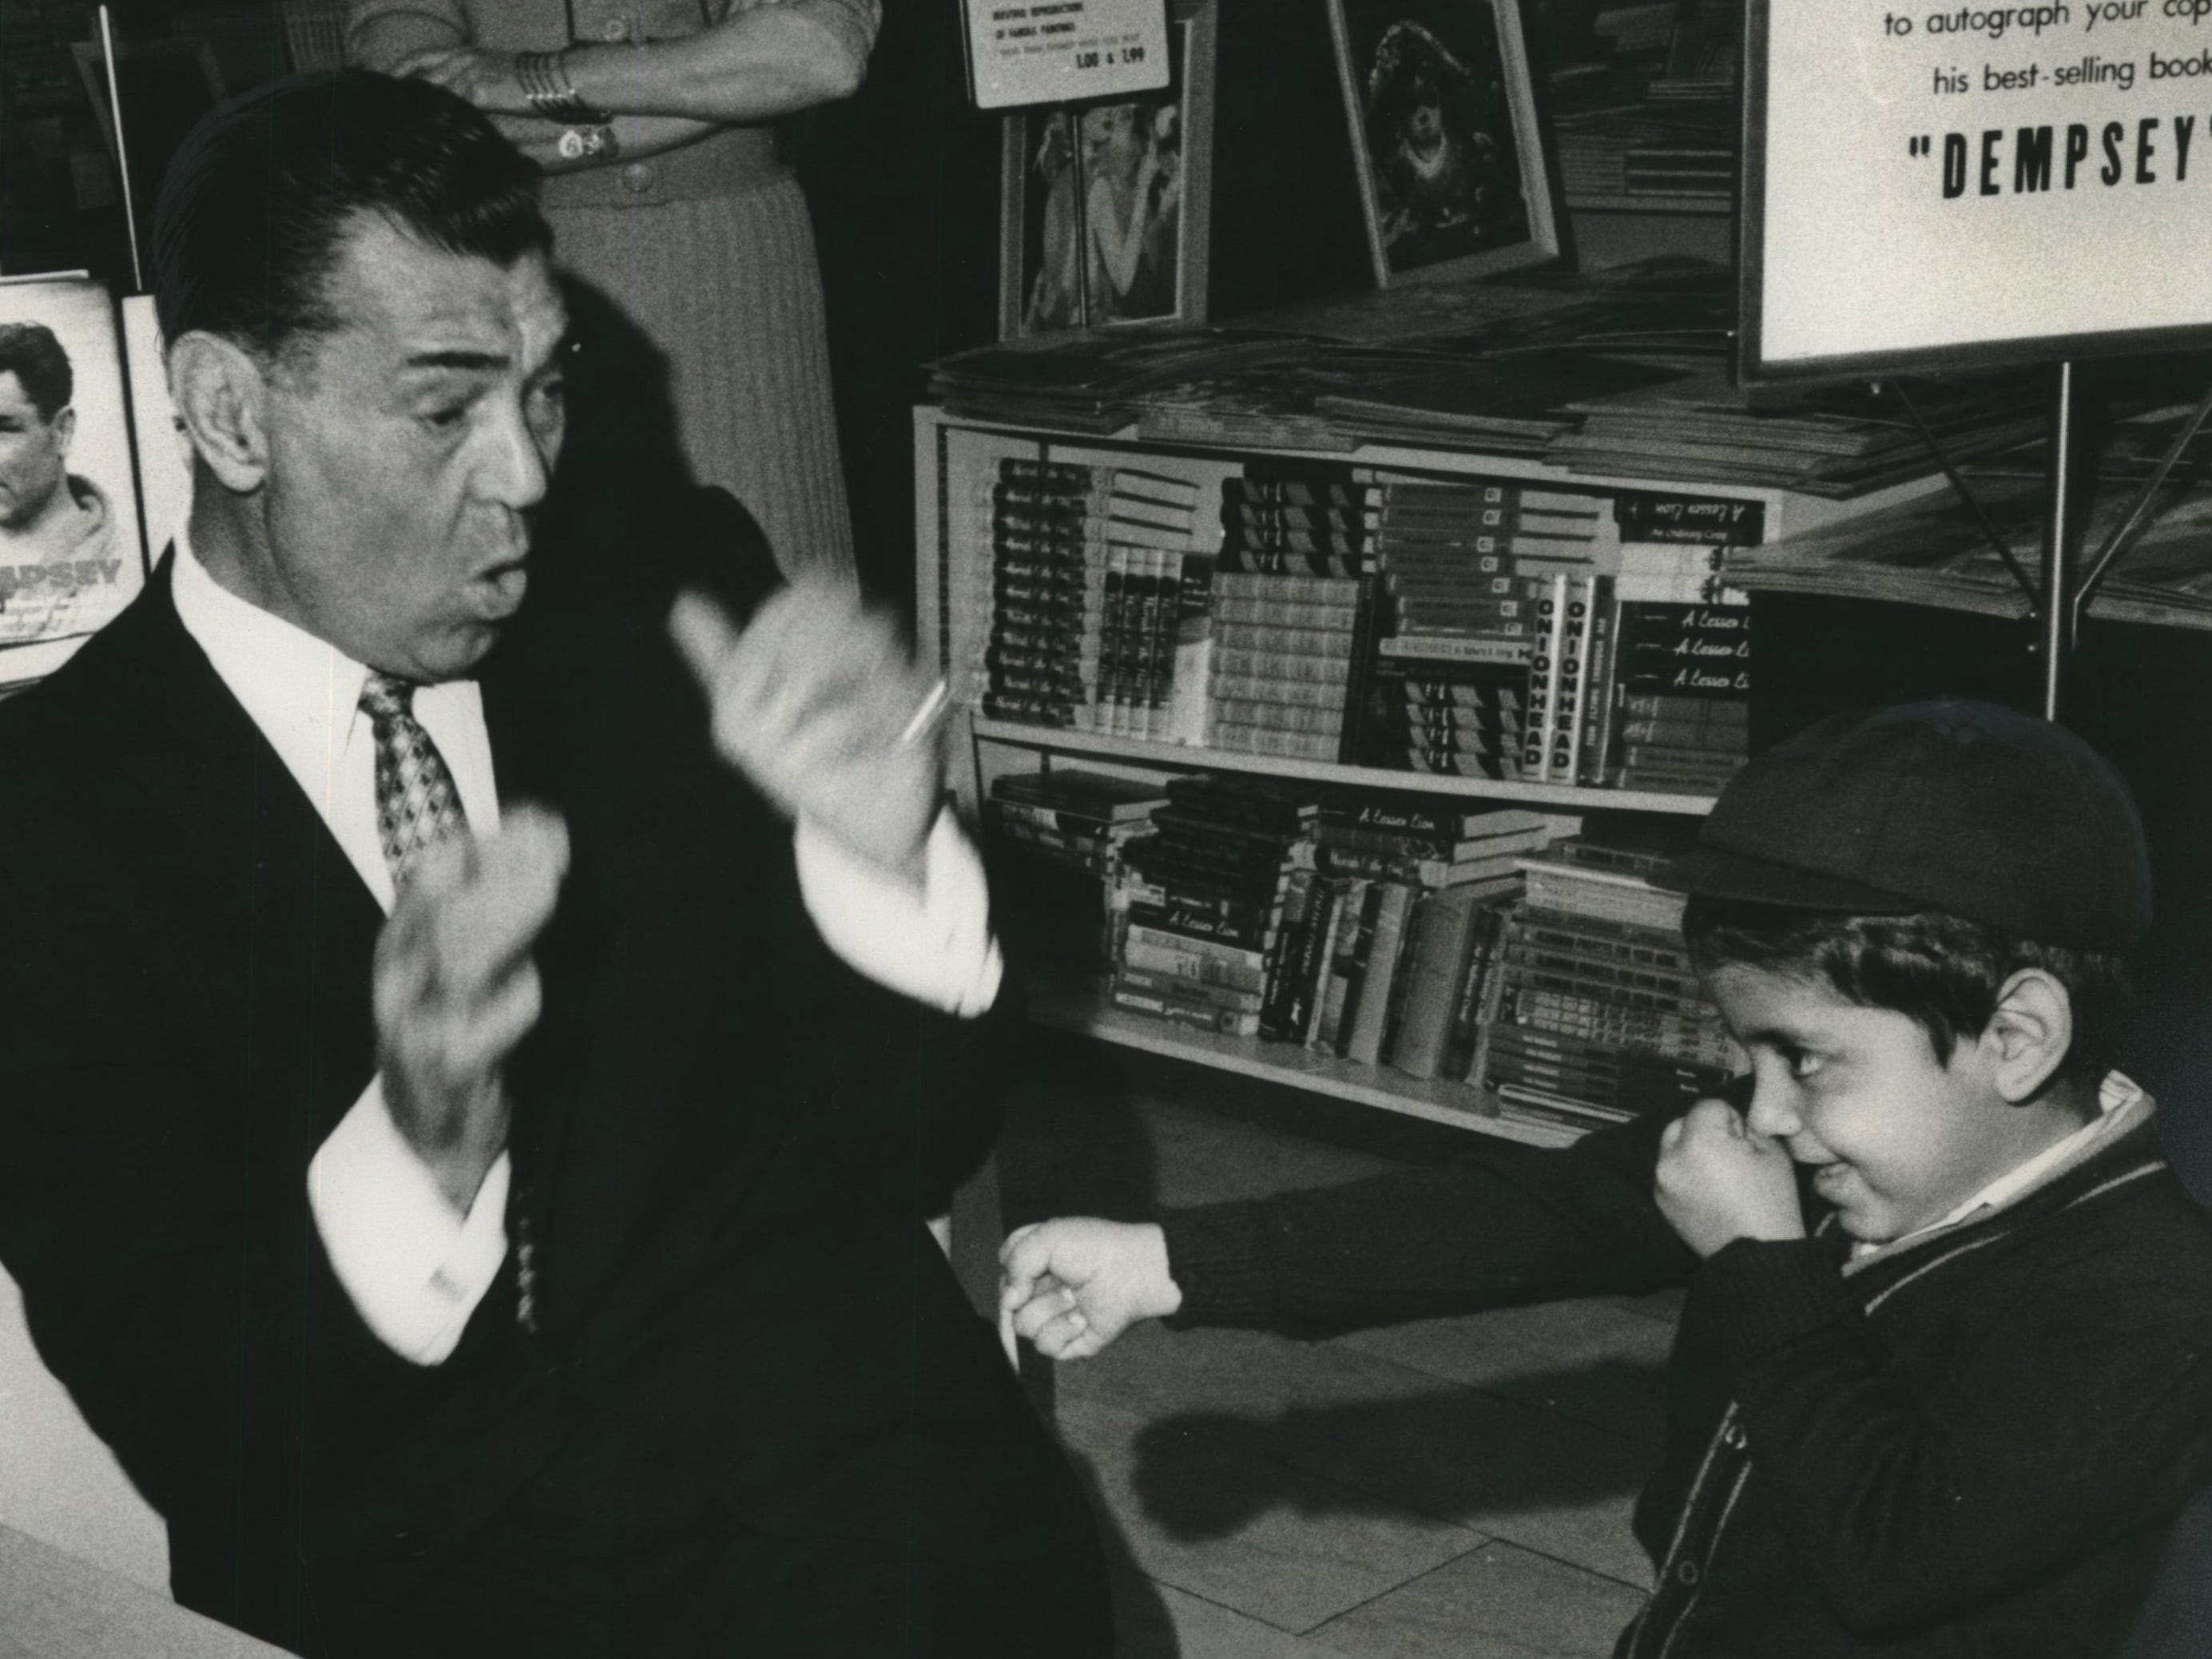 """Look Out, Champ! Look out behind you, Jack! The little fellow, ready to take on the great former heavyweight champion, Jack Dempsey, is 4-year-old Ruben Velazquez, who was at the Boston Store May 20, 1960, where Jack was busy autographing copies of his book. """"Dempsey,"""" by Bob Considine and Bill Slocum, Hearst Headline Service writers."""